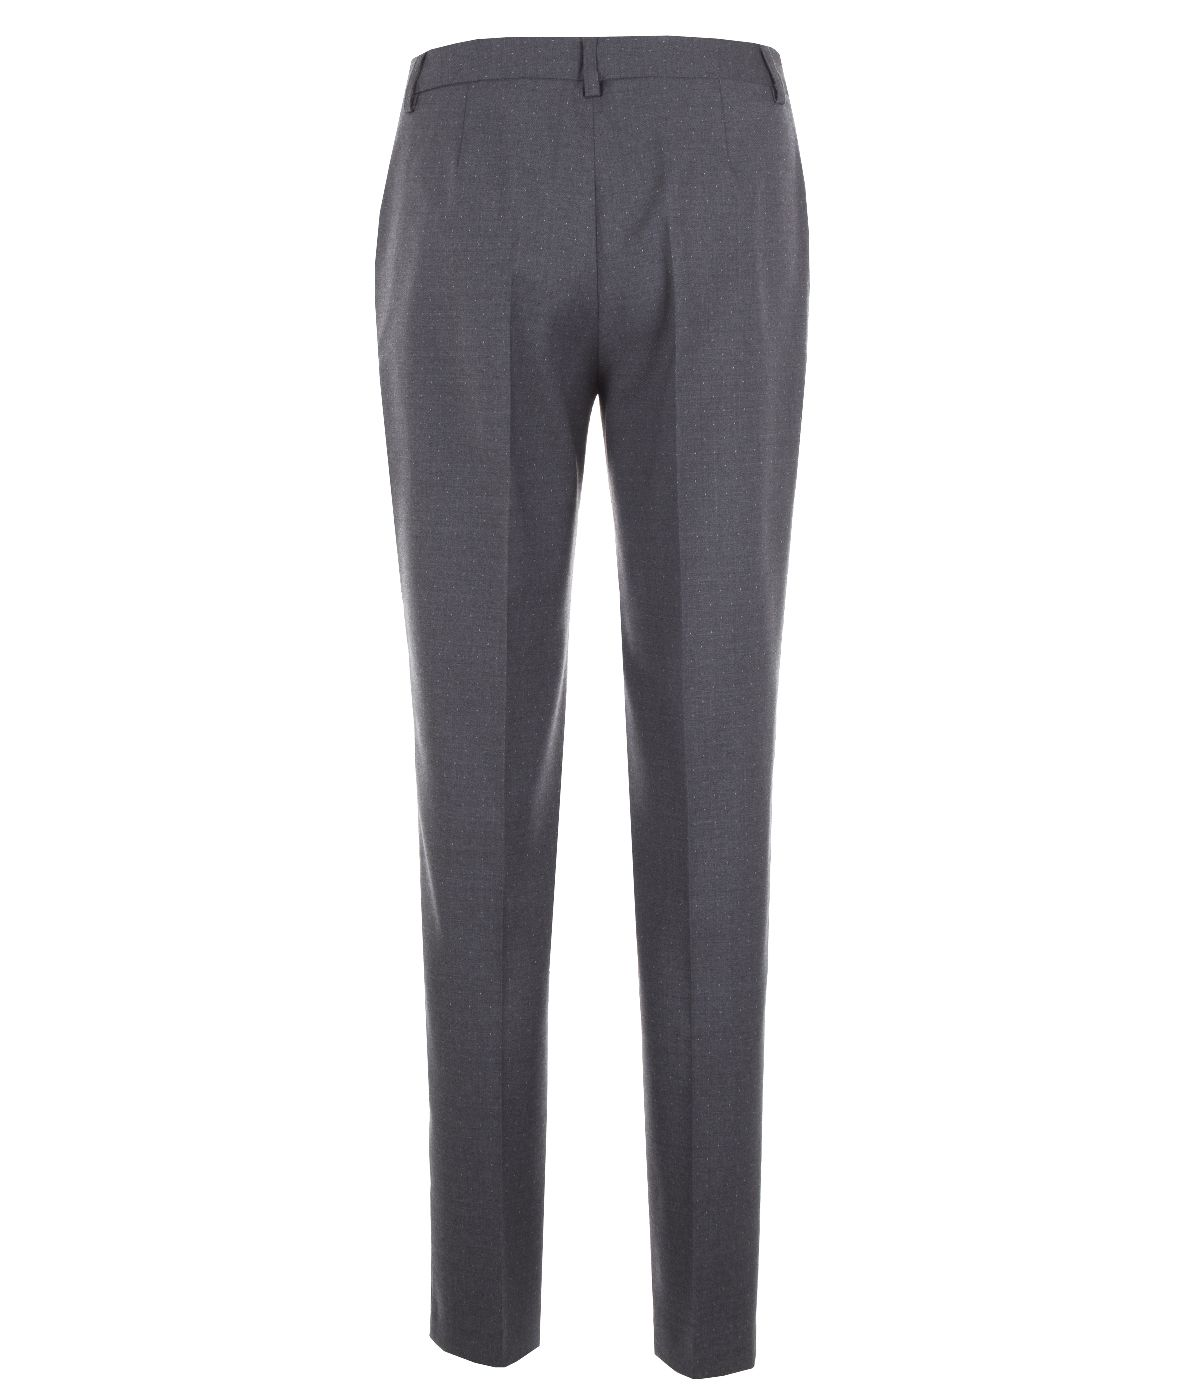 Elegant trousers with crease, with wool 1